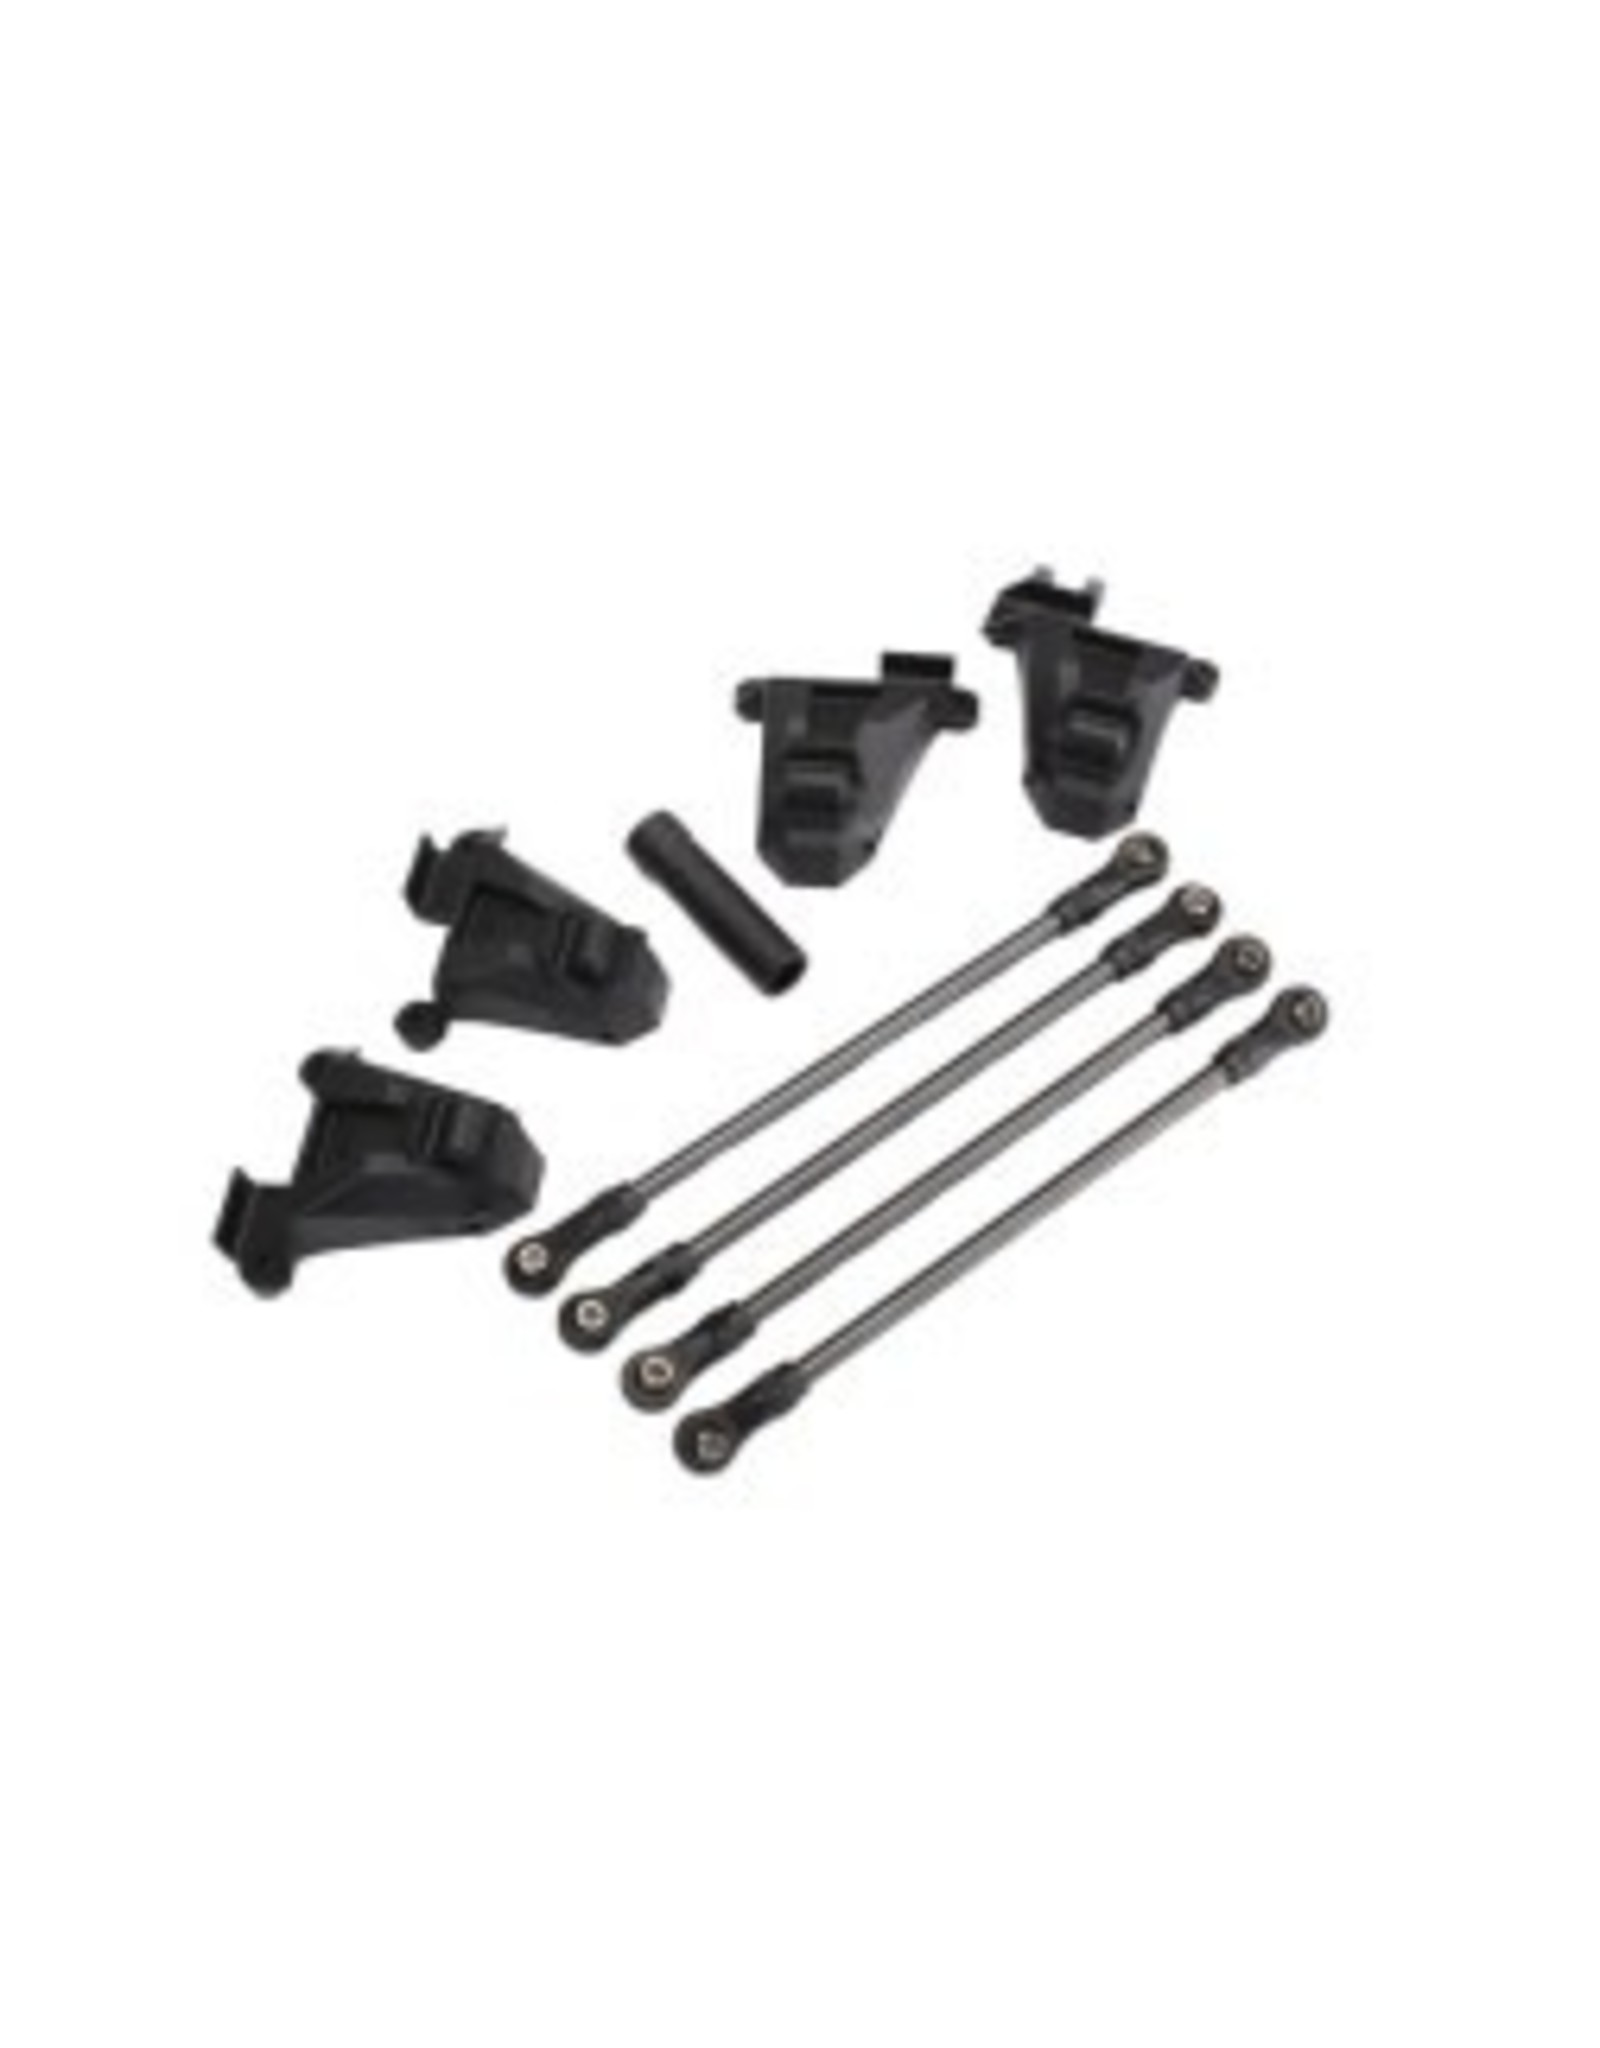 Traxxas Chassis conversion kit, TRX-4 (short to long wheelbase) (includes rear upper & lower suspension links, front & rear shock towers, long female half shaft)